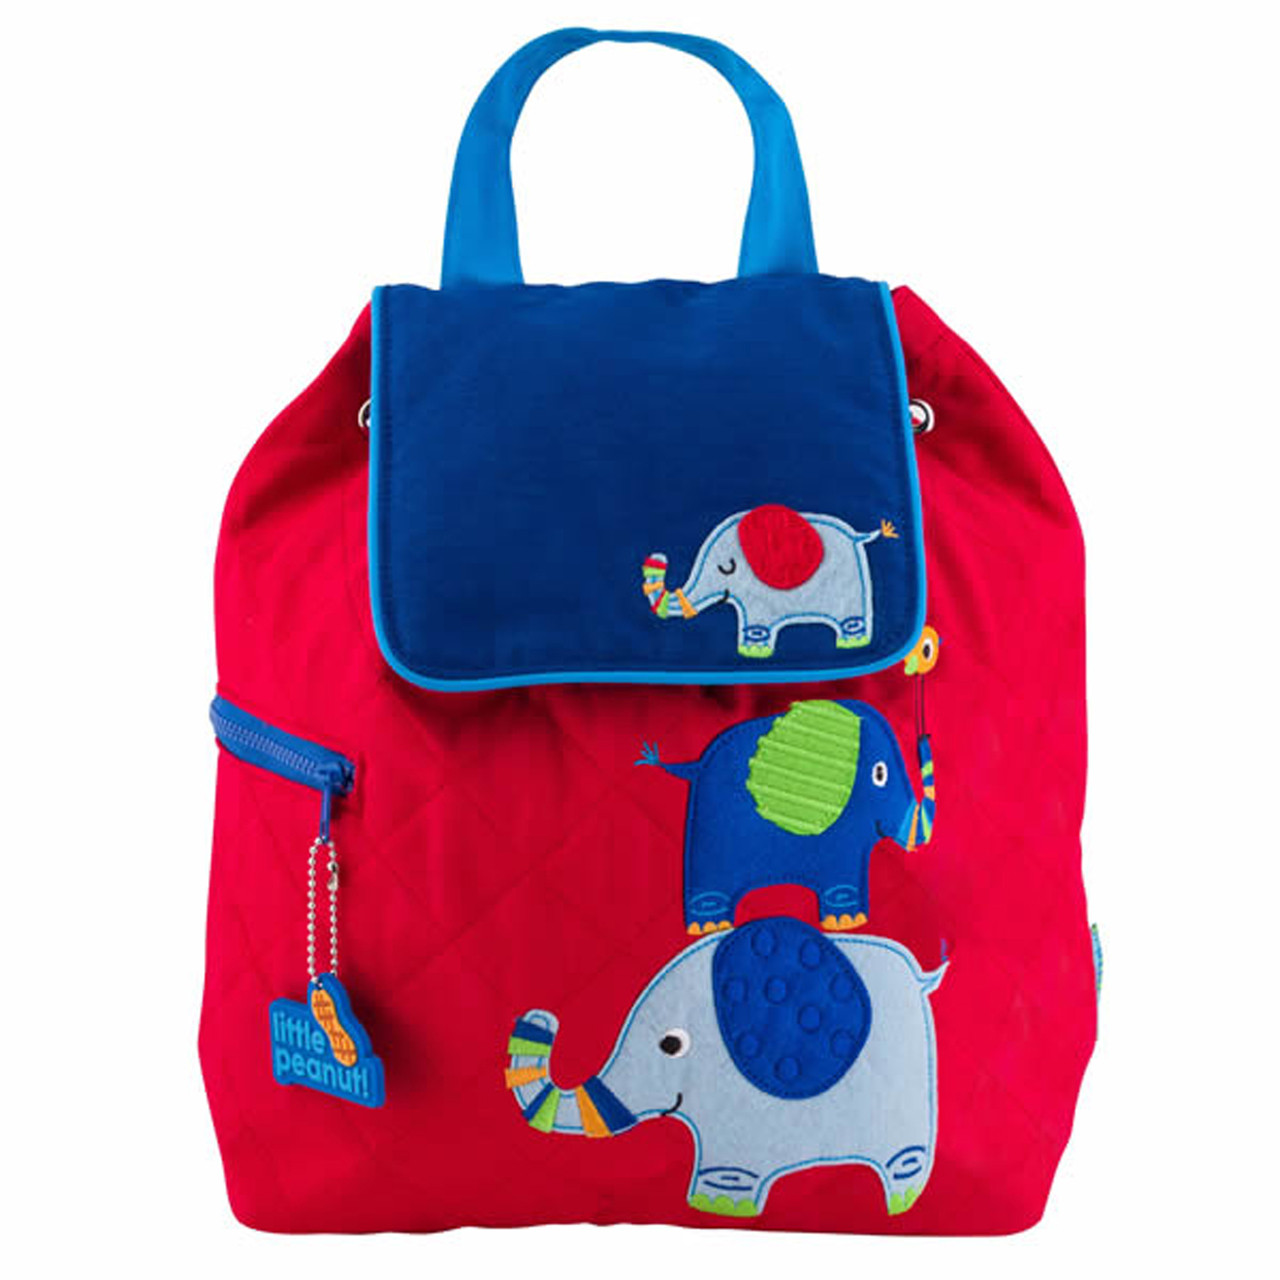 Stephen Joseph Quilted Backpack Blue Elephant